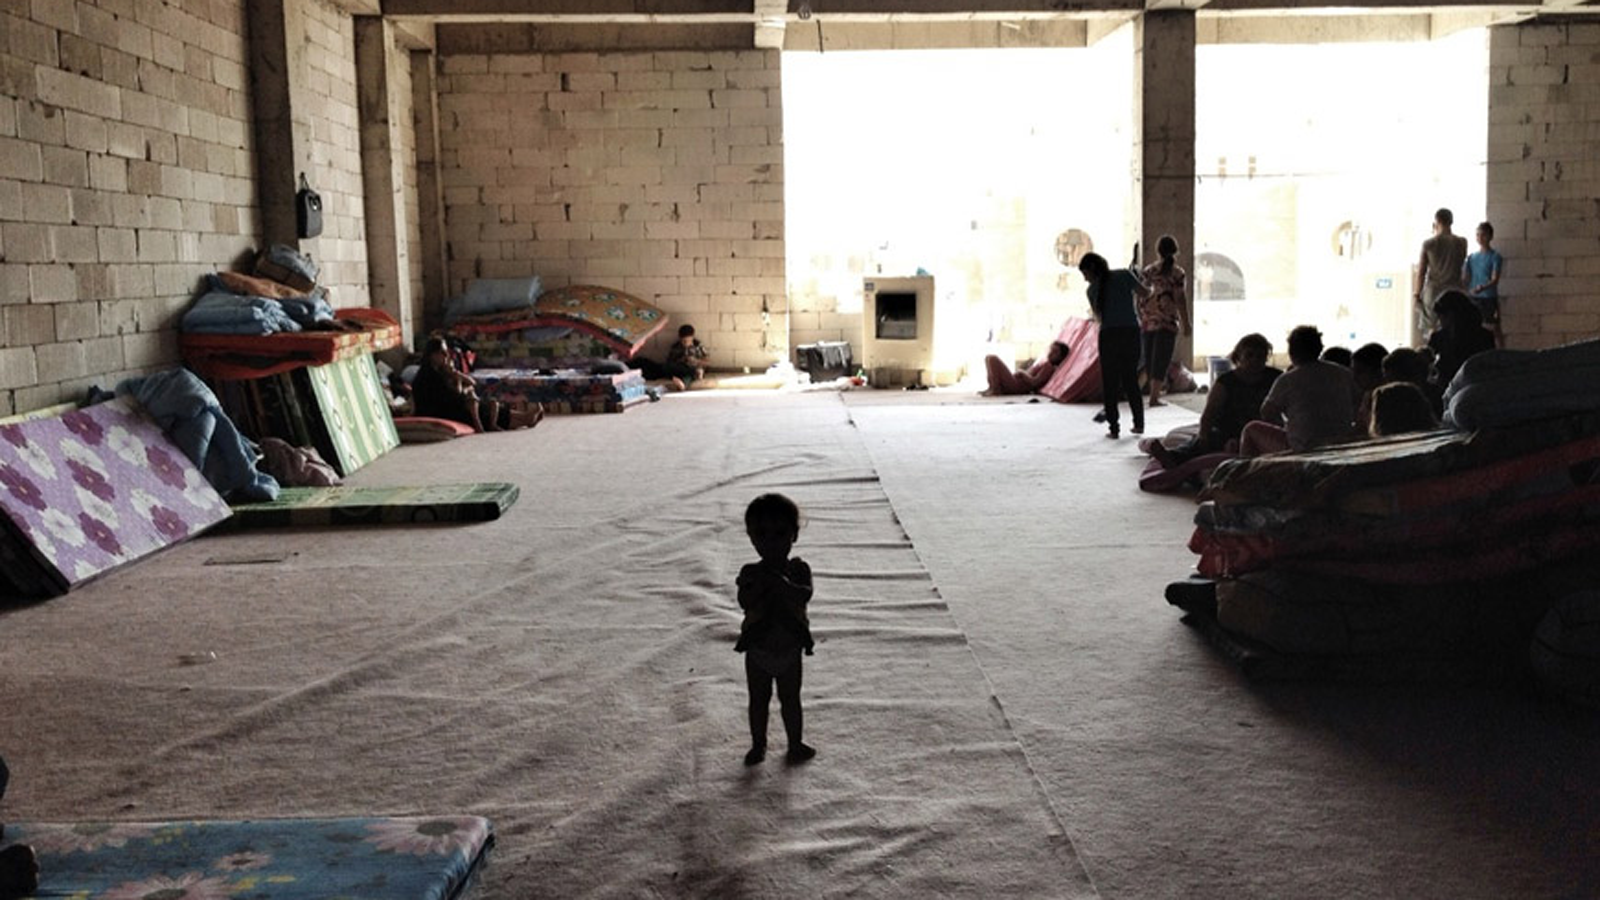 Displaced Iraqis are Desperate for Care